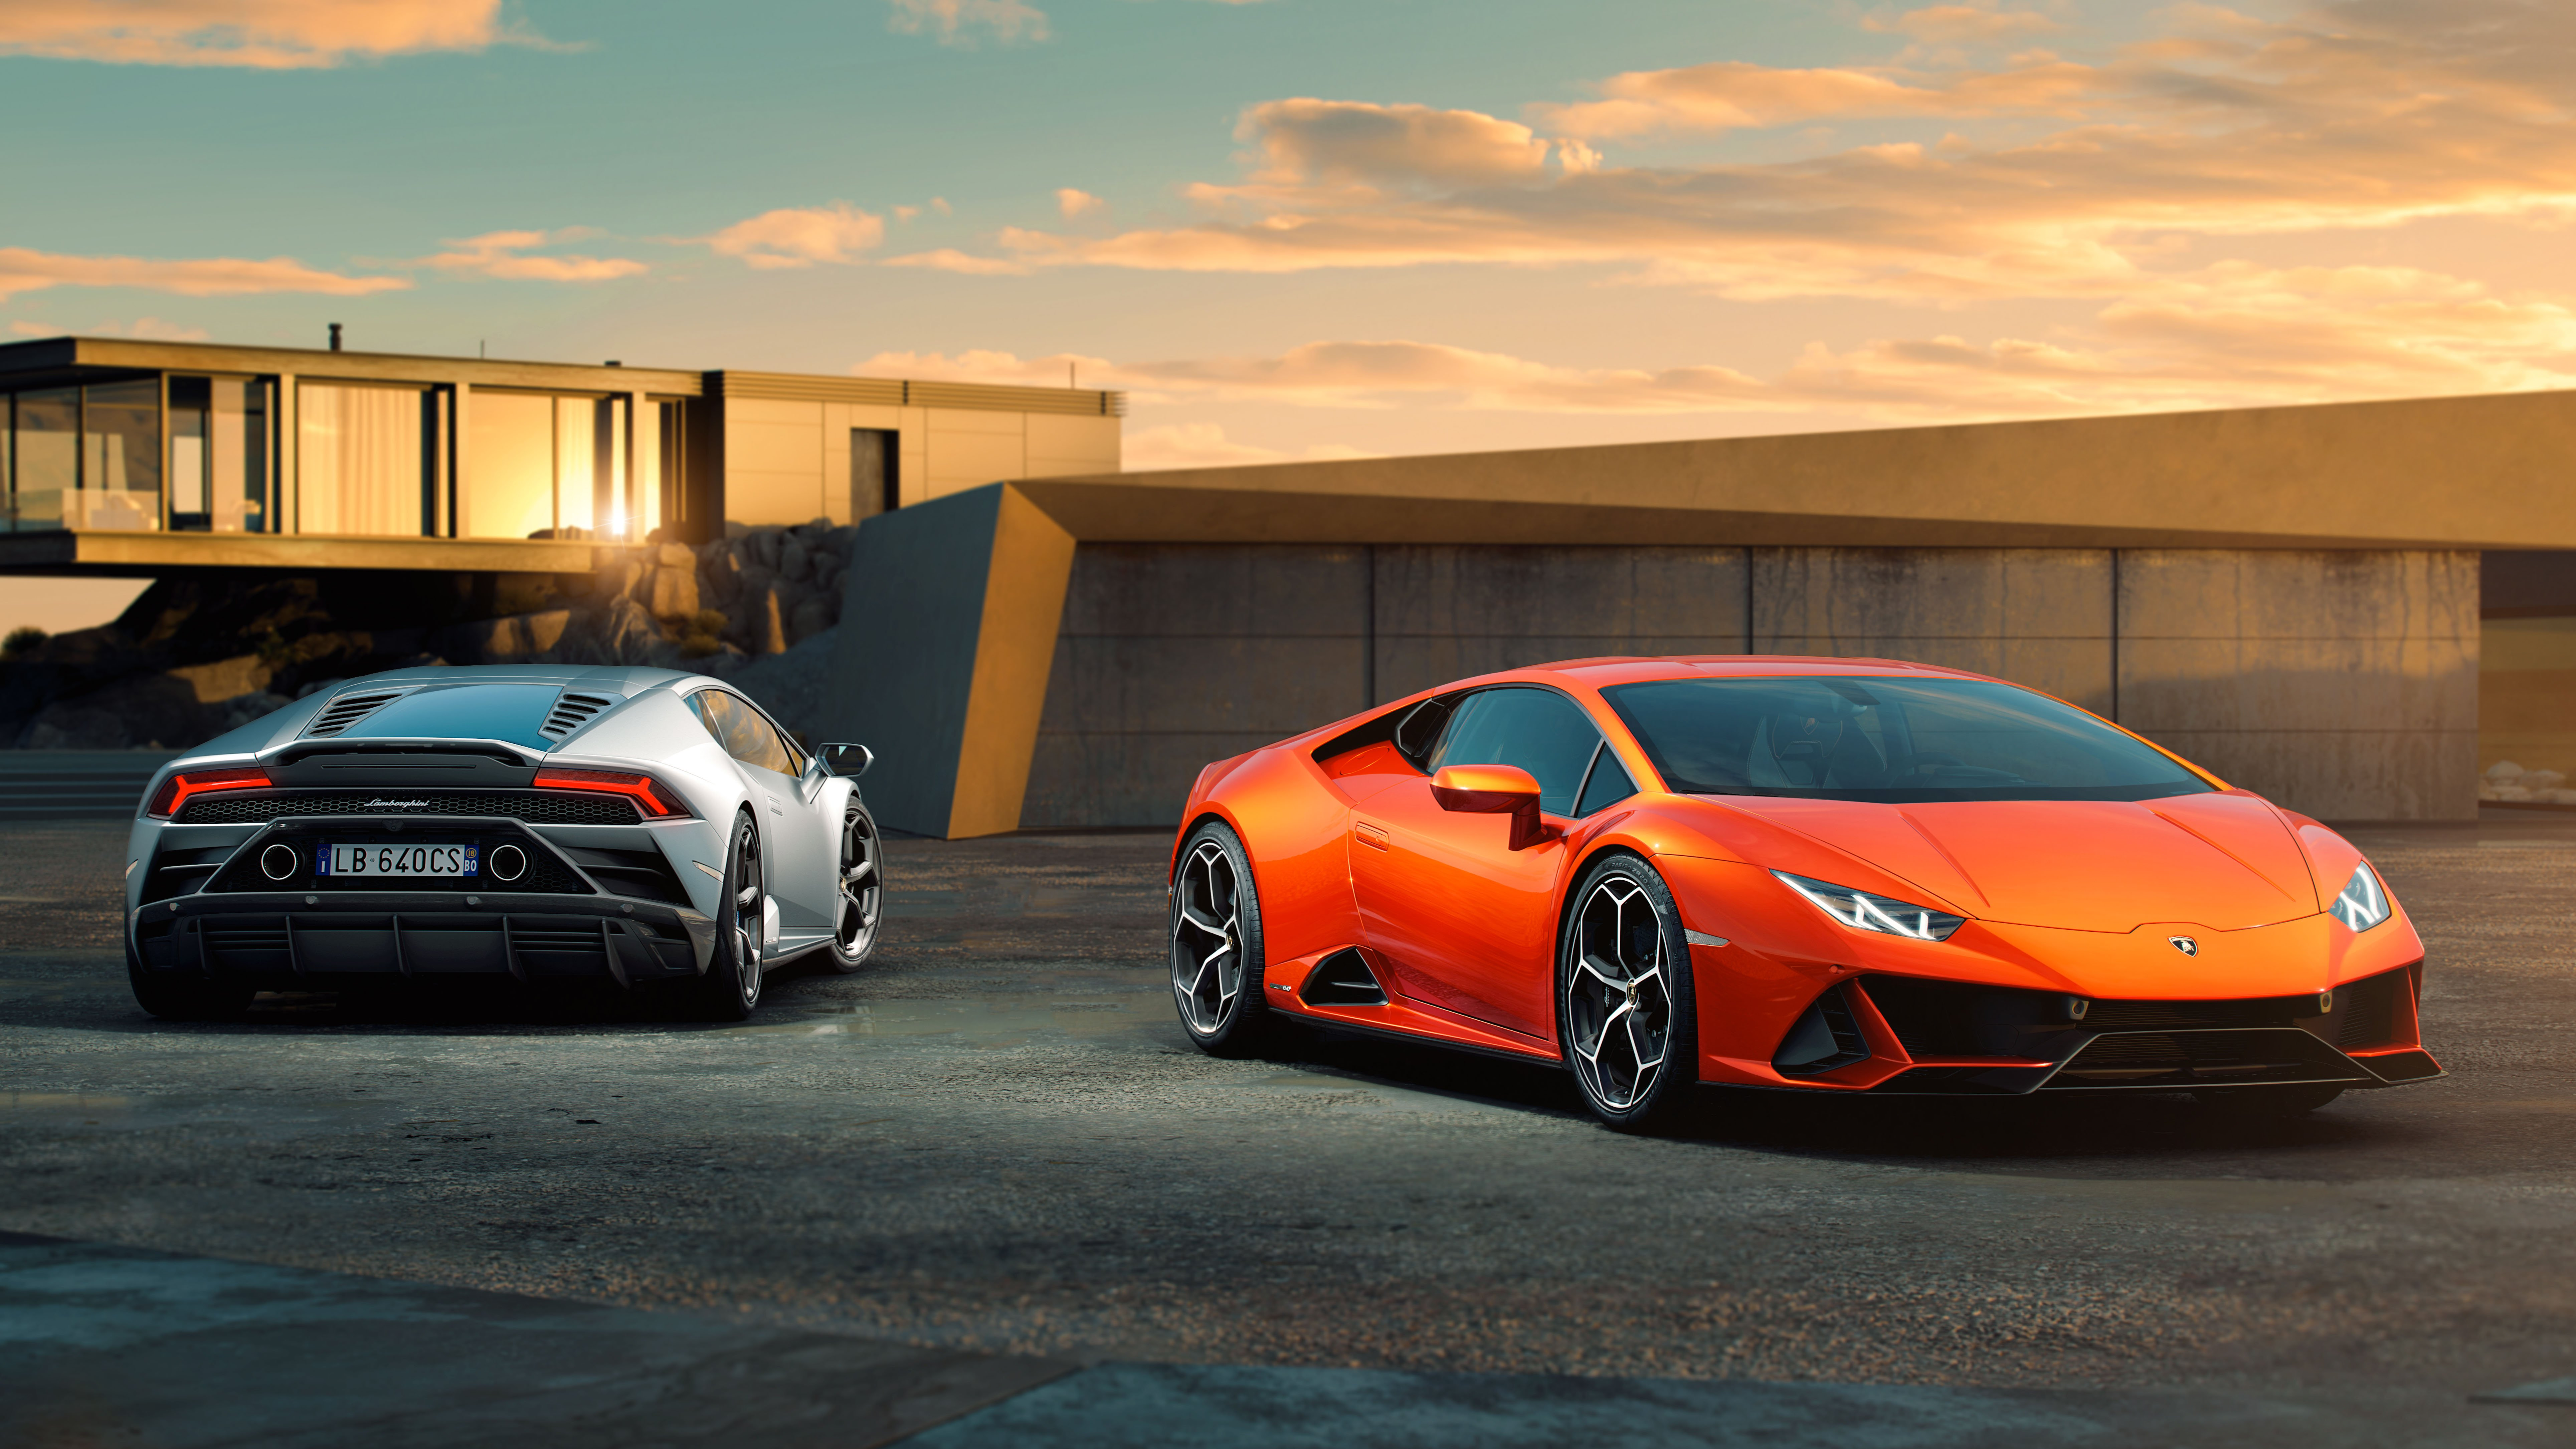 2019 Lamborghini Huracan Evo Unveiled Pricing Revealed